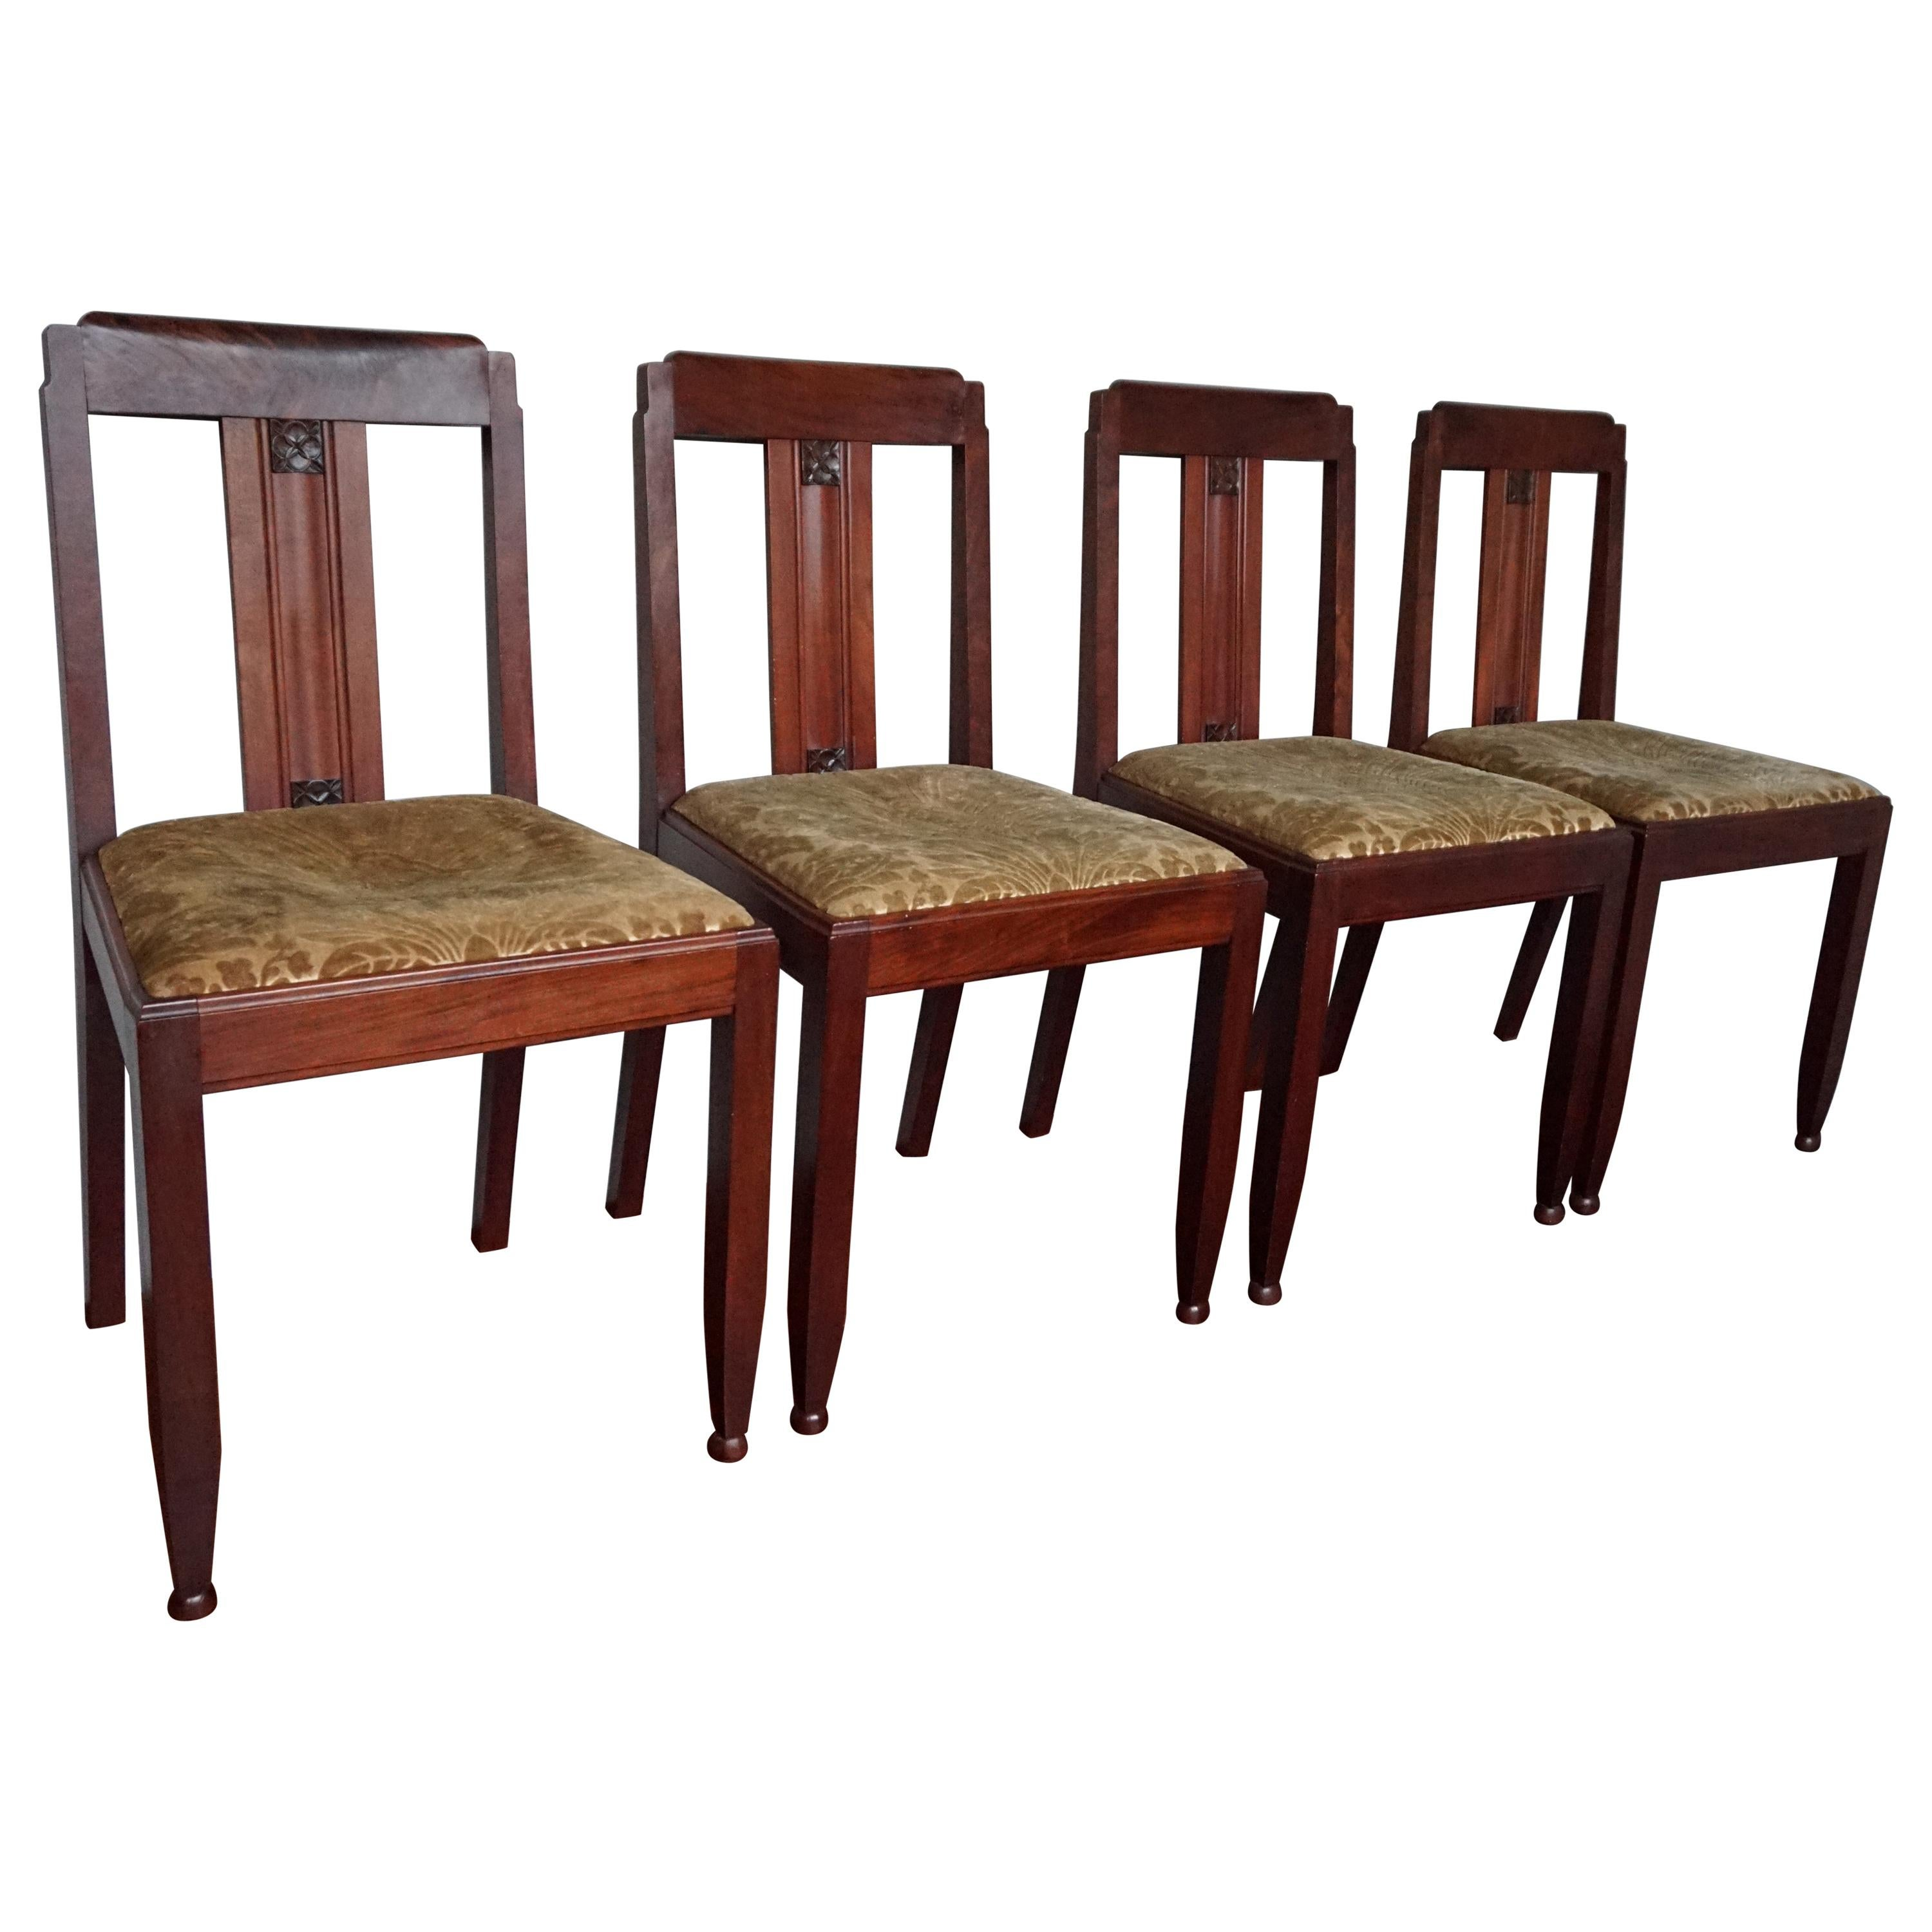 Set of 4 Dutch Arts & Crafts Mahogany Dining Chairs with Inlaid Stylized Flowers